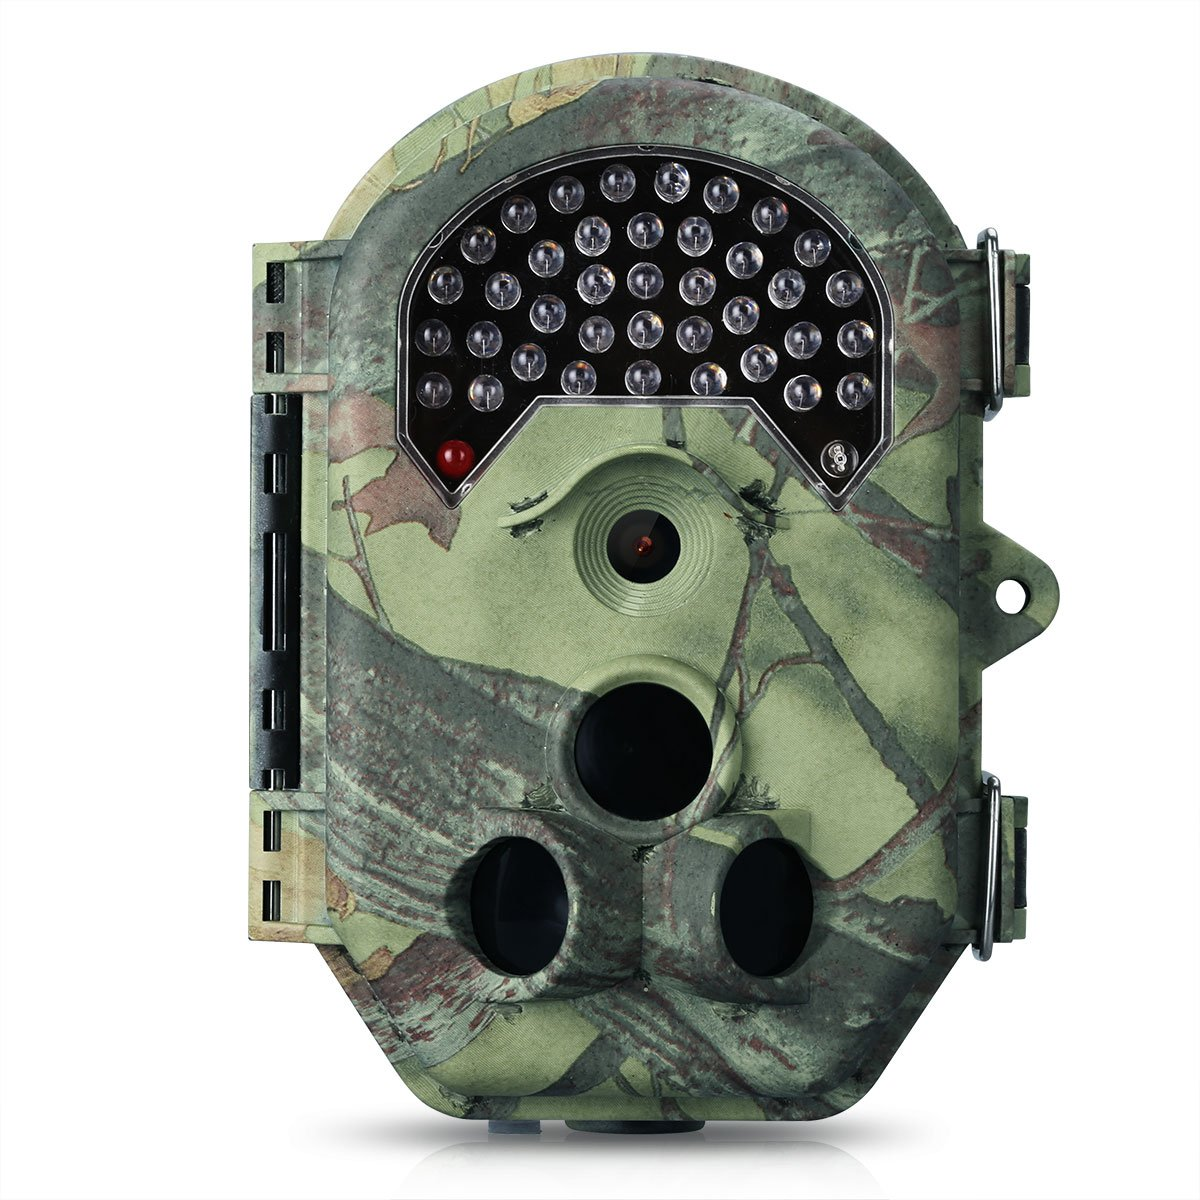 Best Video Camera for Hunting, Breemann 16MP 1080P HD 120° PIR Sensor Infrared Scouting Tracker Trail Camera with 66FT/20M Night Vision Distance 0.2S Trigger Speed IP54